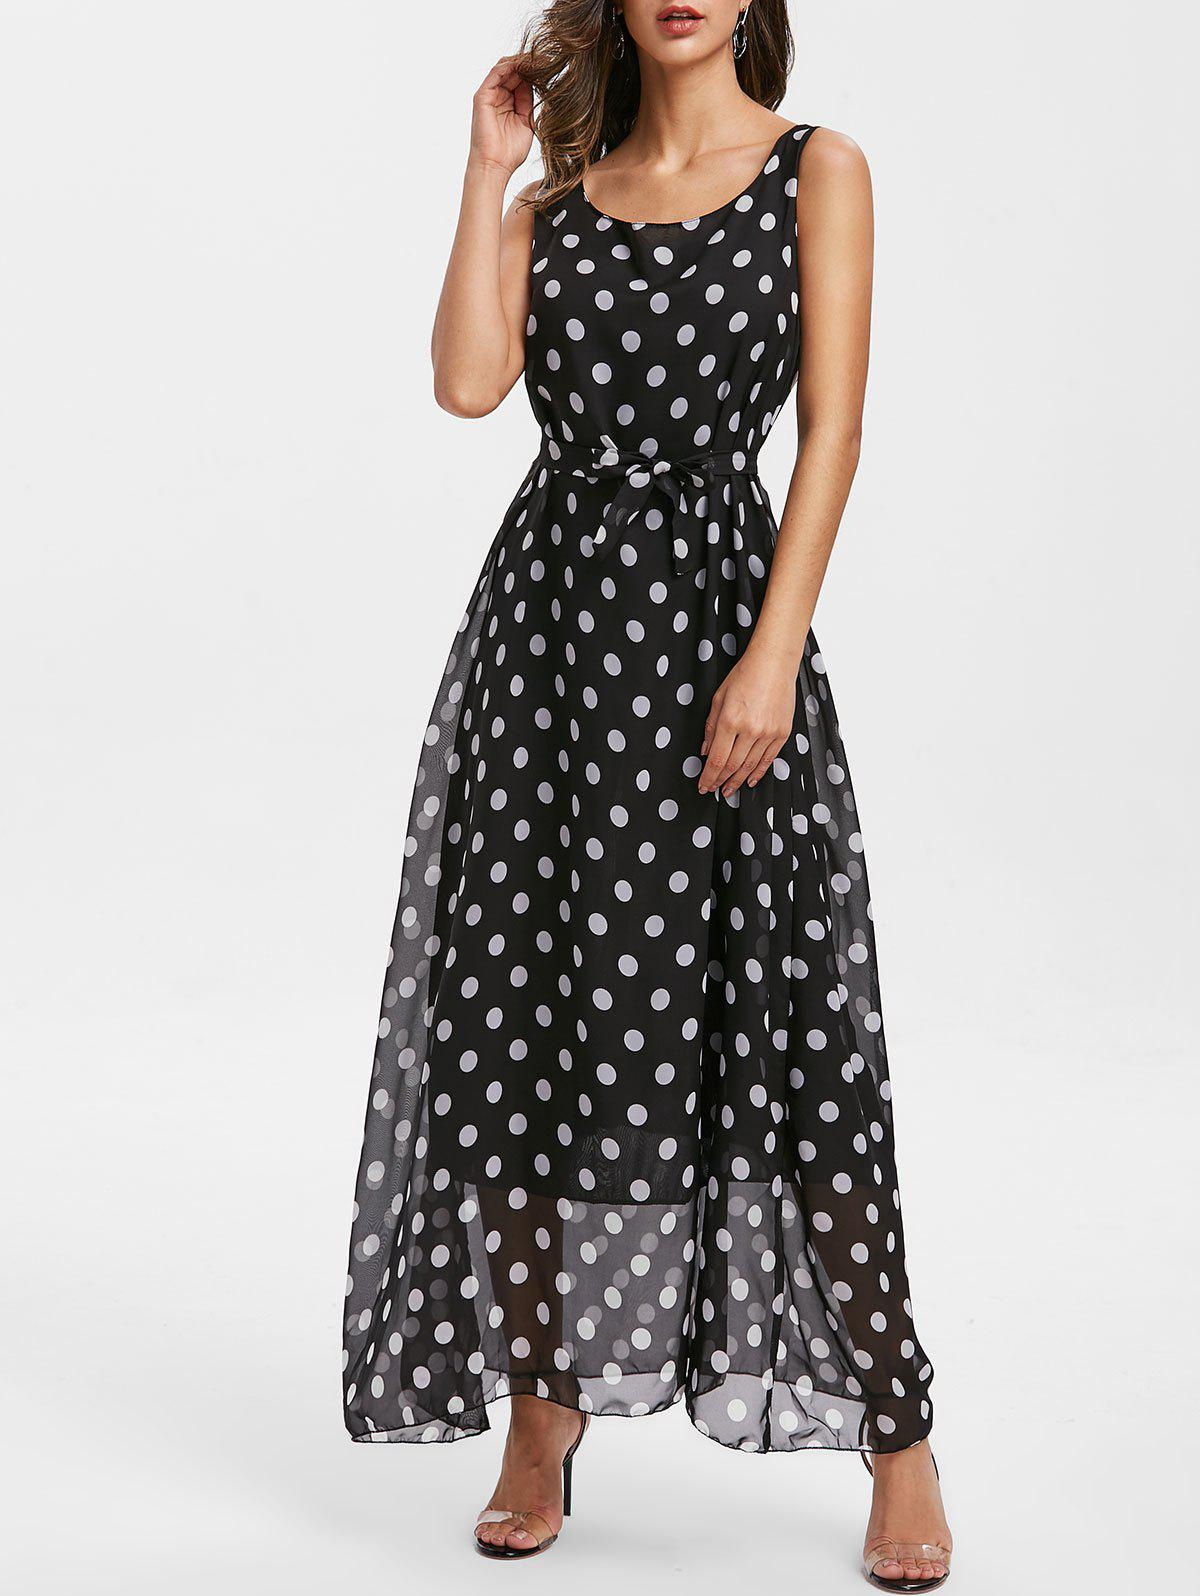 Store Polka Dot Sleeveless Belt Dress